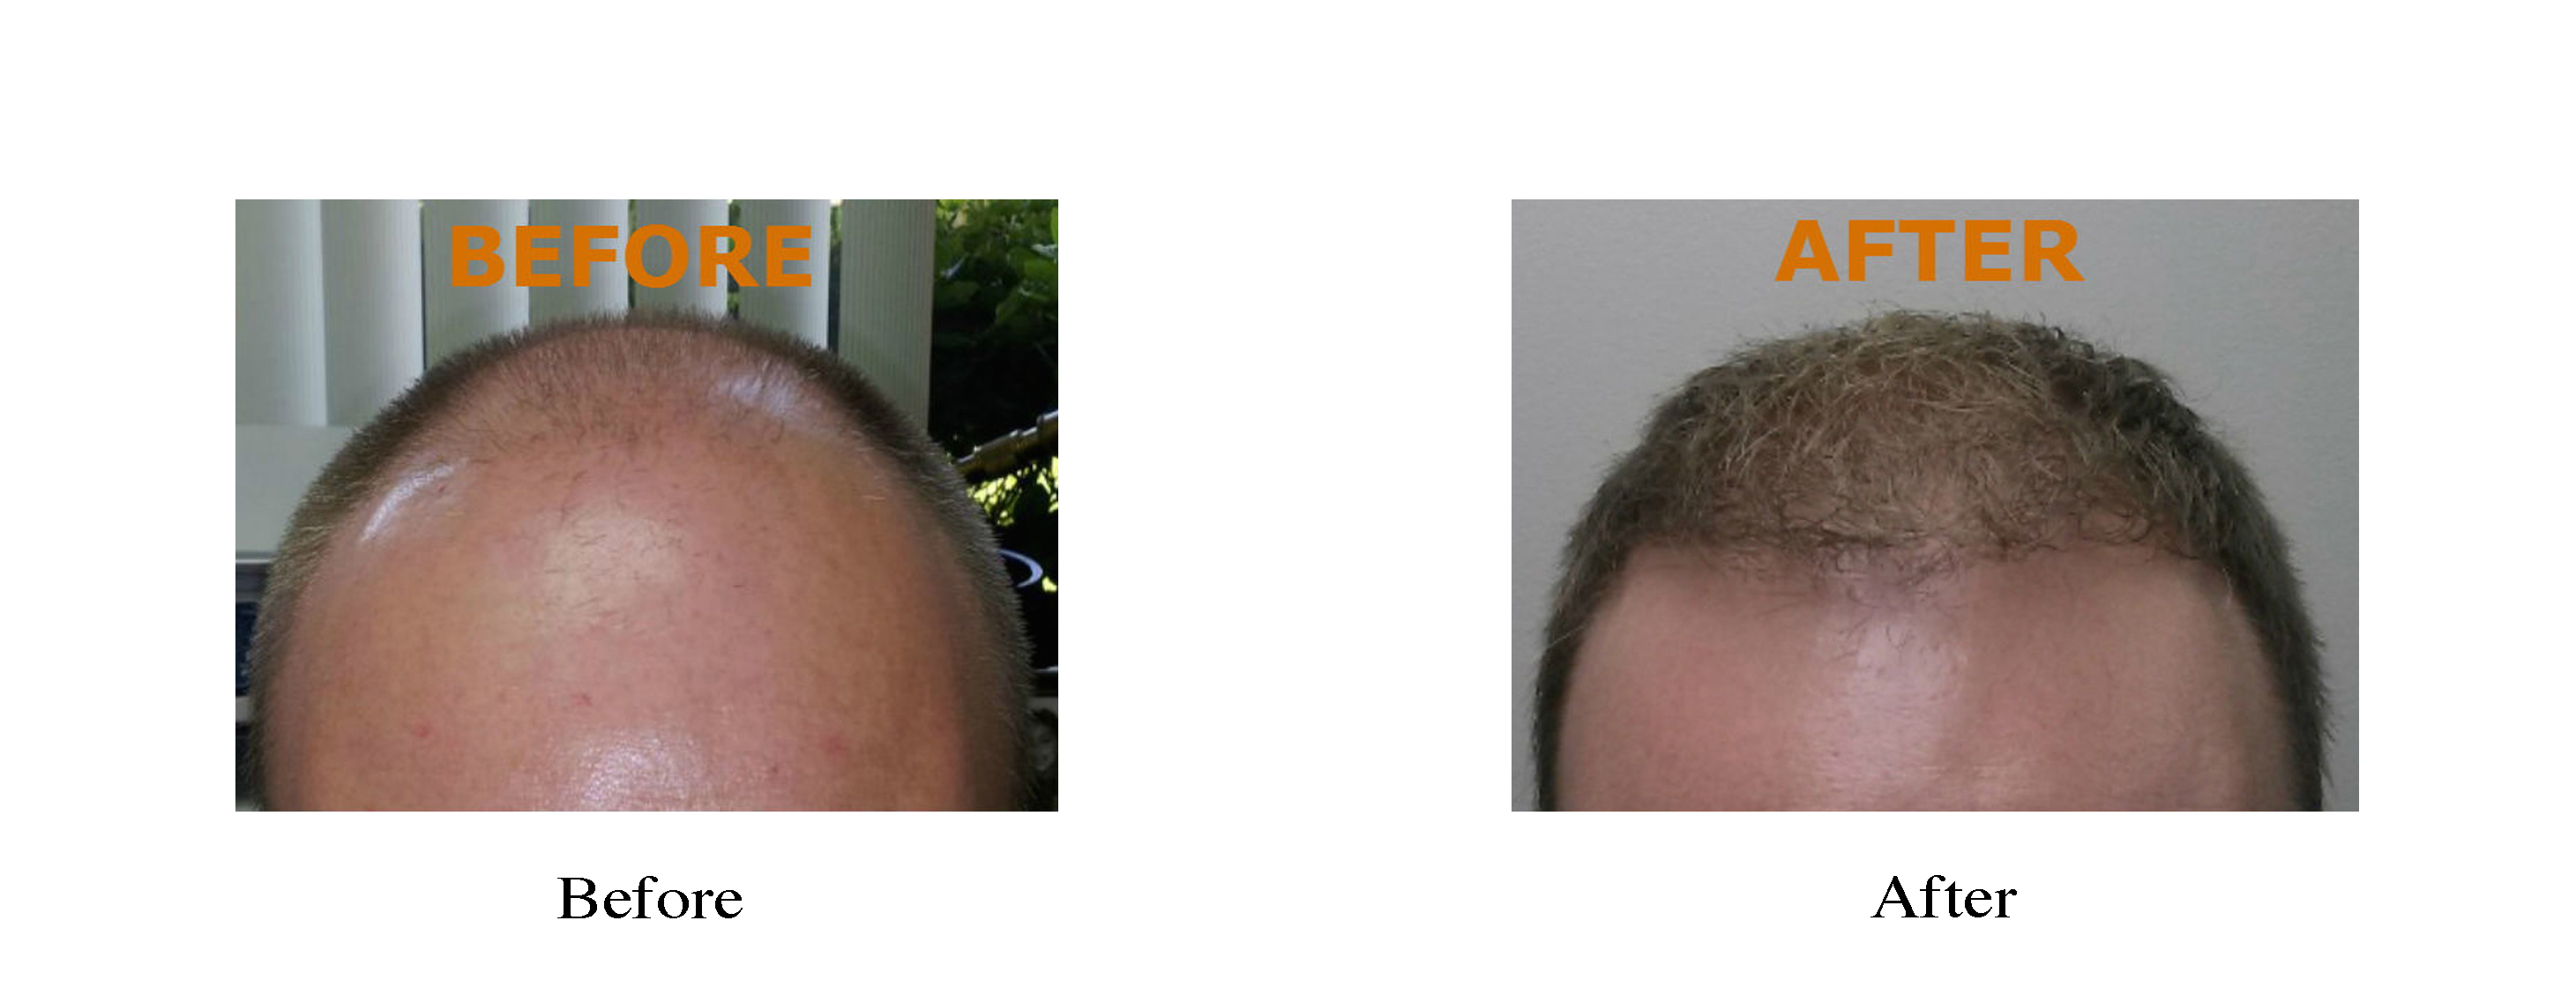 NeoGraft Hair Restoration - Tri-Cities - Kennewick, Pasco, and